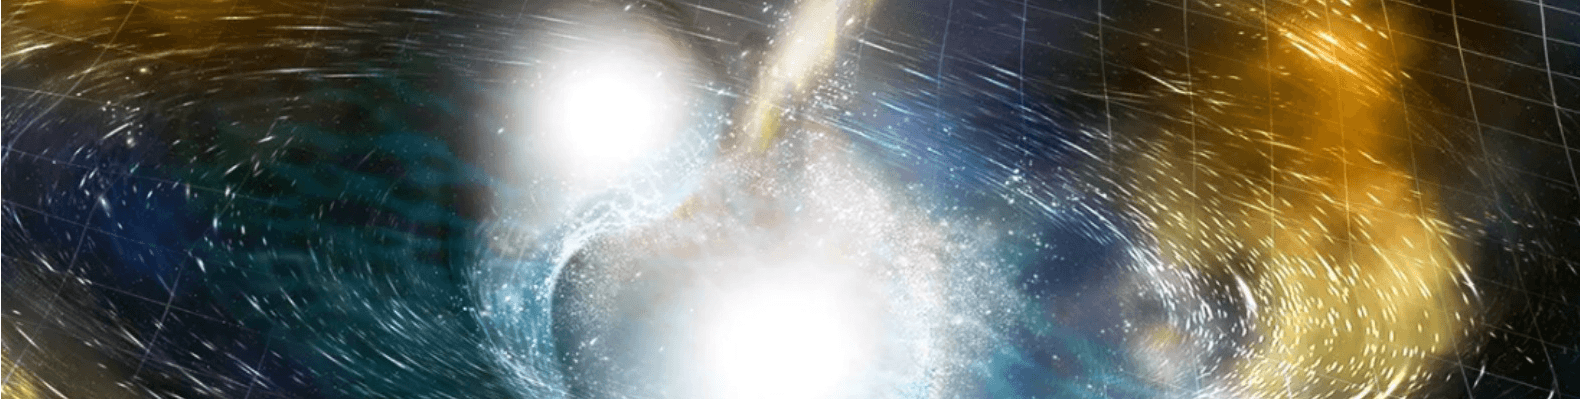 Transformed By Time And History >> Scientists Witnessed A Neutron Star Mashup For The First Time